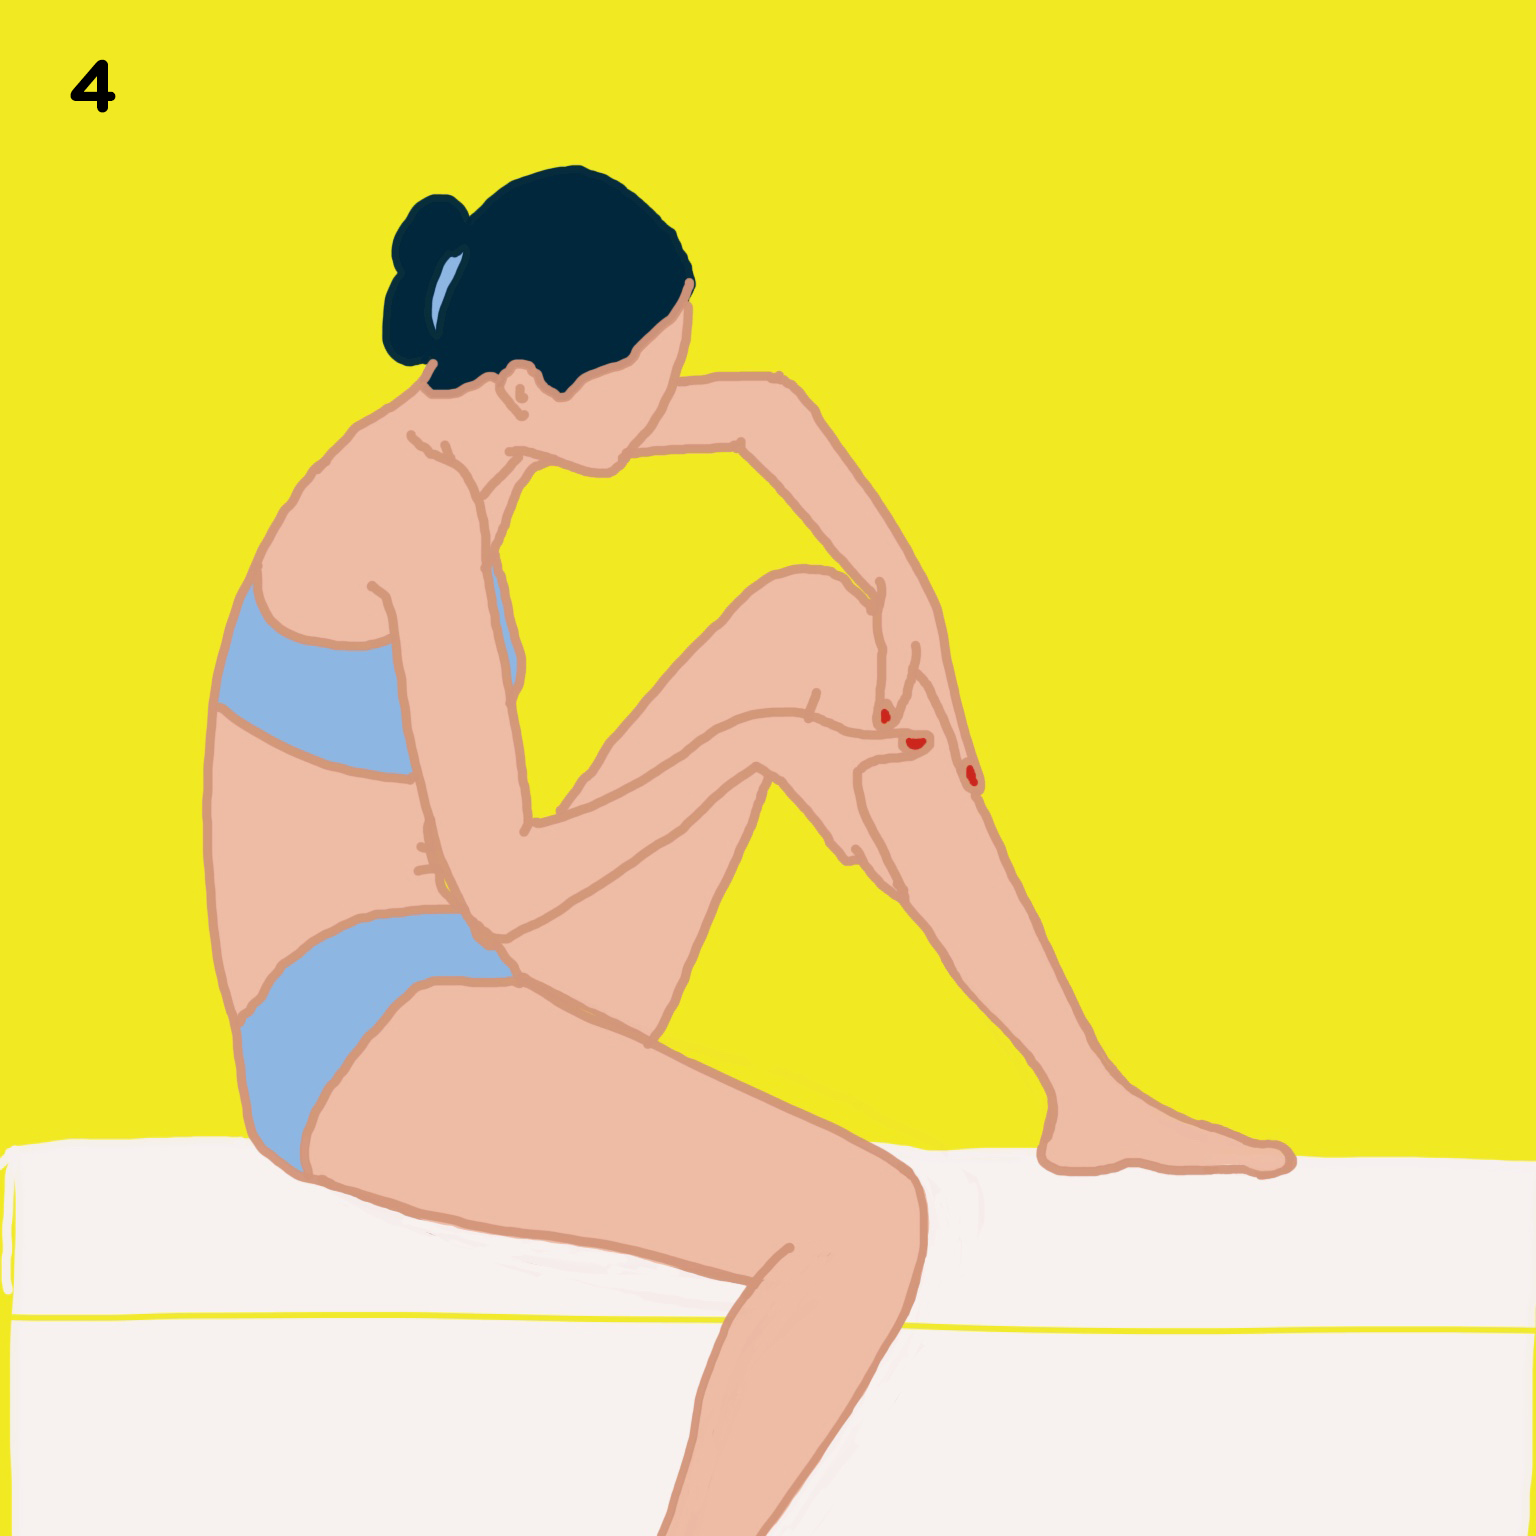 4. FEET, LEGS & BUTTOCKS   Beginning at your feet and working toward the middle of your body, use long strokes on the legs and circular strokes on the knees.  Tip 1: We like to place one foot on the rim of the bathtub or sink here.  Tip 2: we take our time massaging the plant of our feet (where loads of nerve endings concentrate), our ankles before moving our way up to the legs.  Tip 3: When getting to the thighs and buttocks, we do our anti-cellulite massage at the same time. Read:  How to say 'aurevoir' to your cellulite